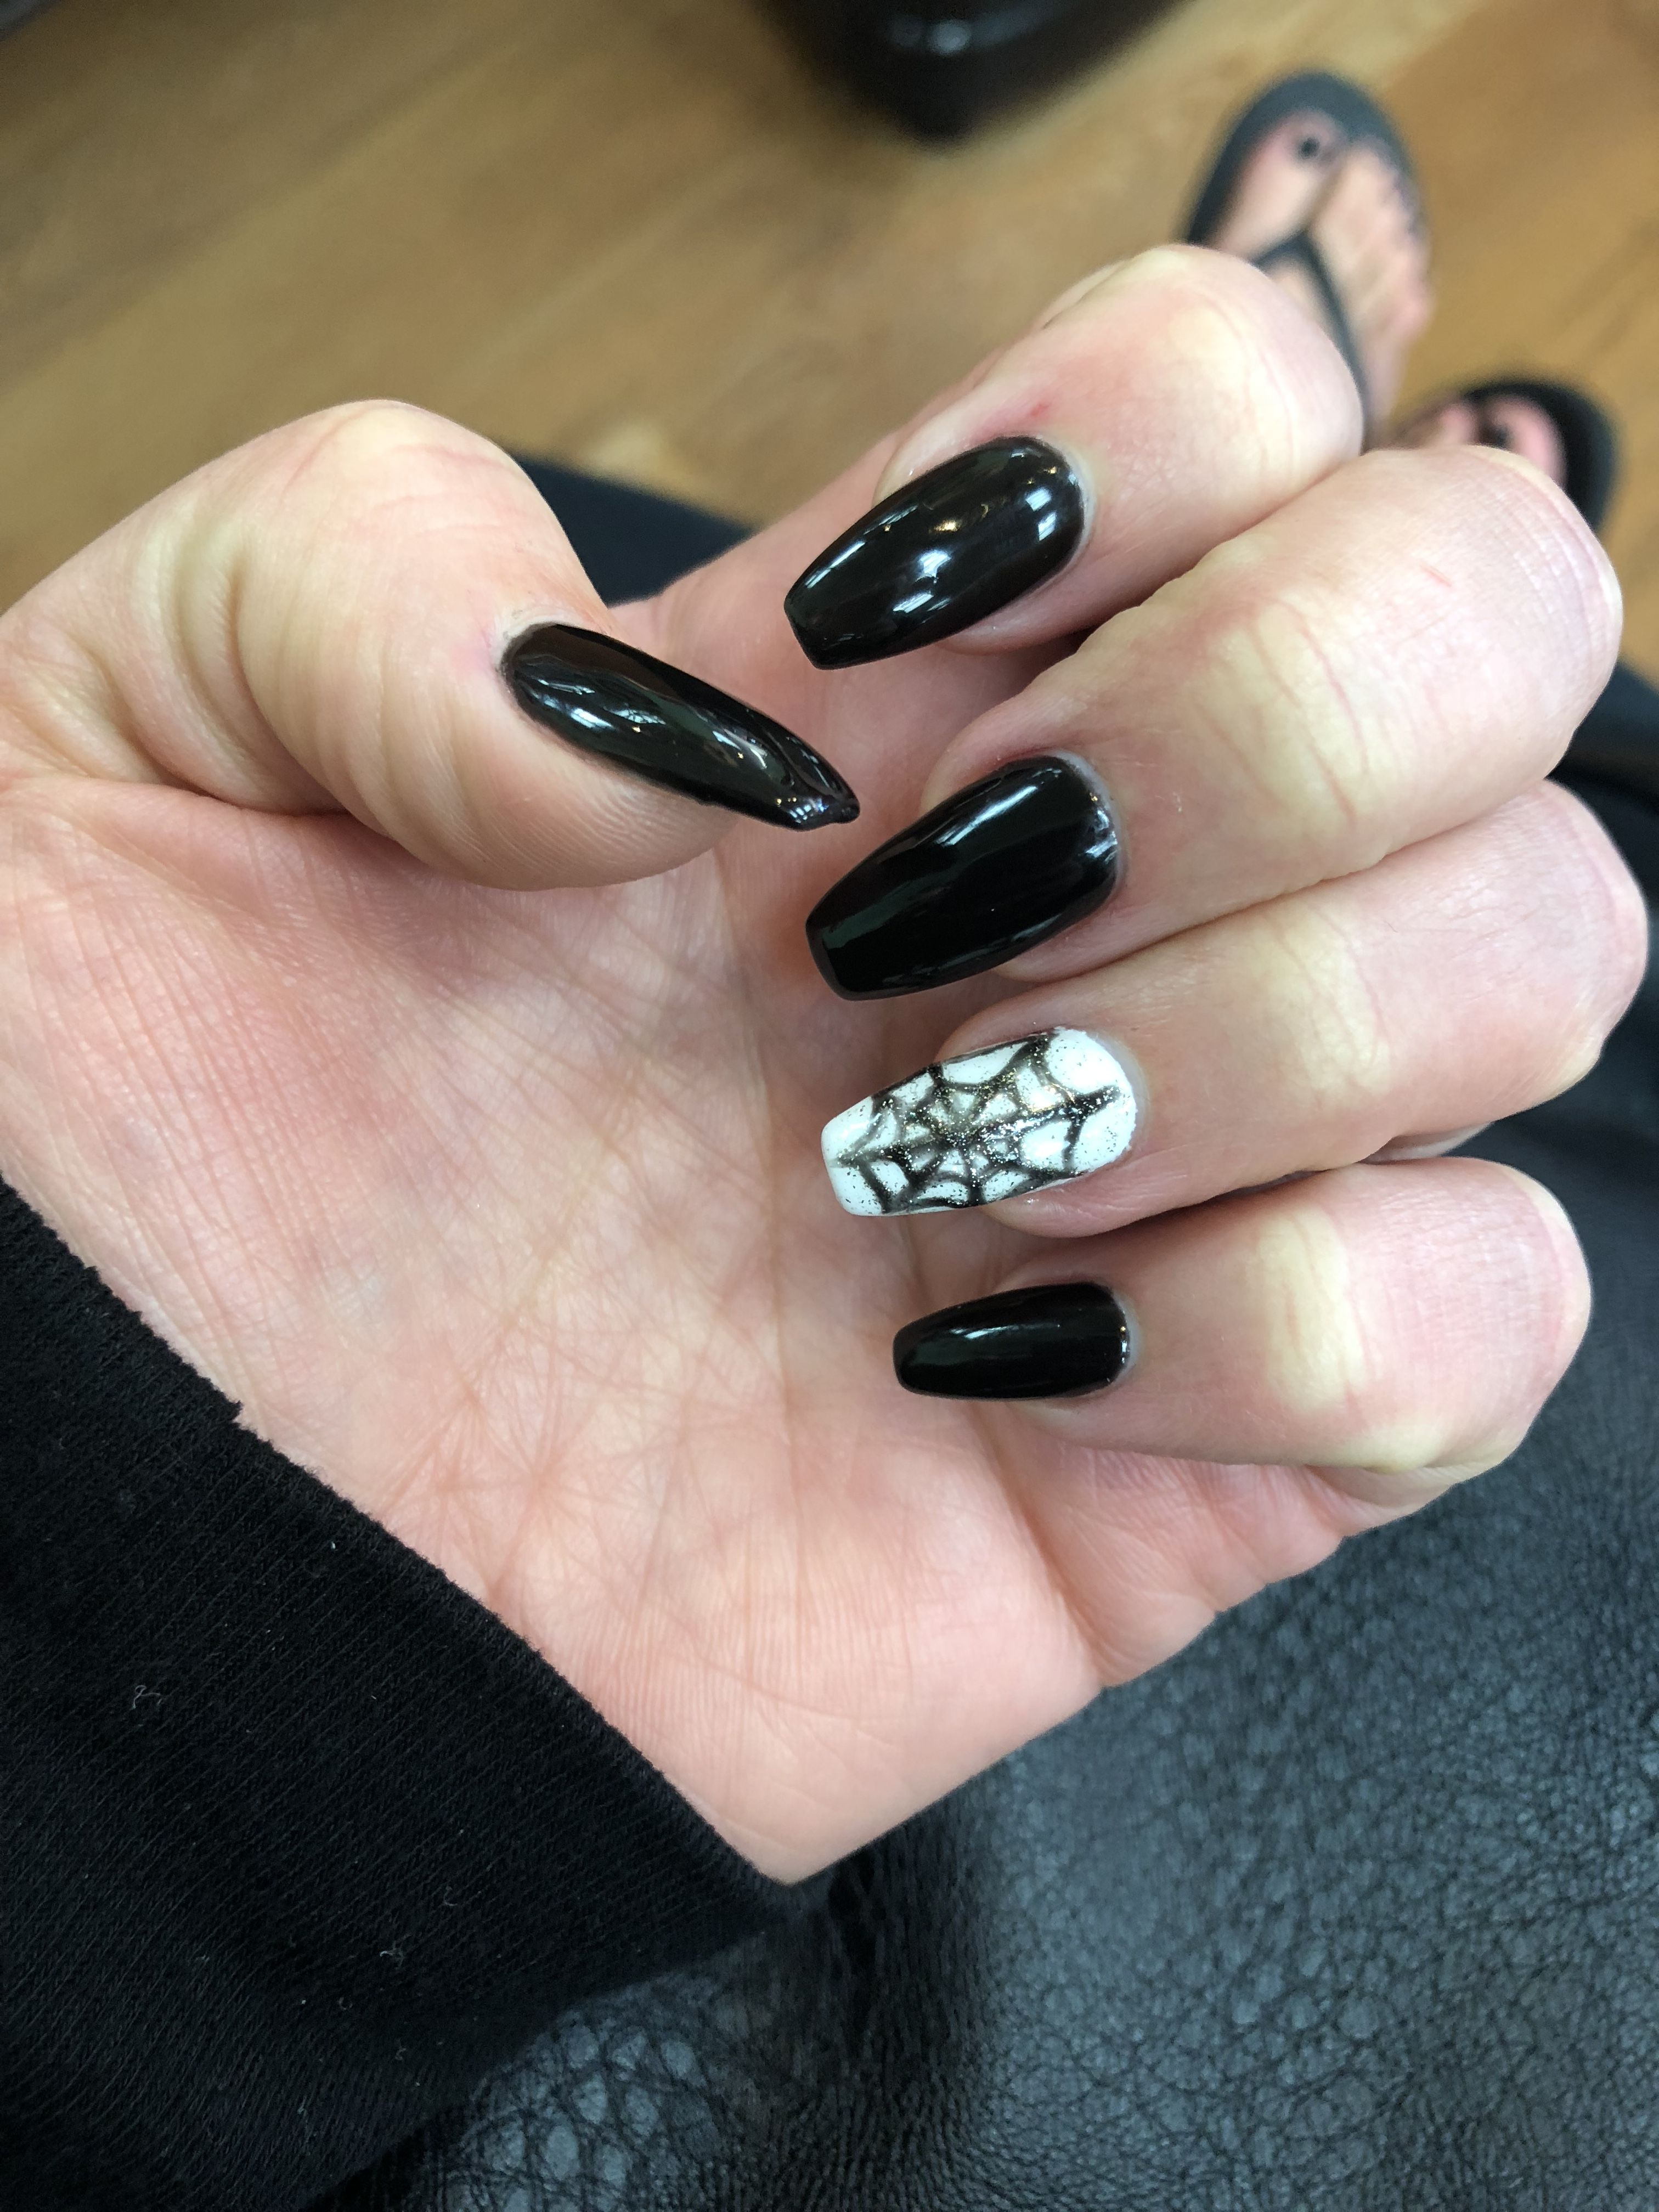 Spooky Halloween Nails Black Coffin Nails Spider Webs Black Coffin Nails Halloween Nails Nails